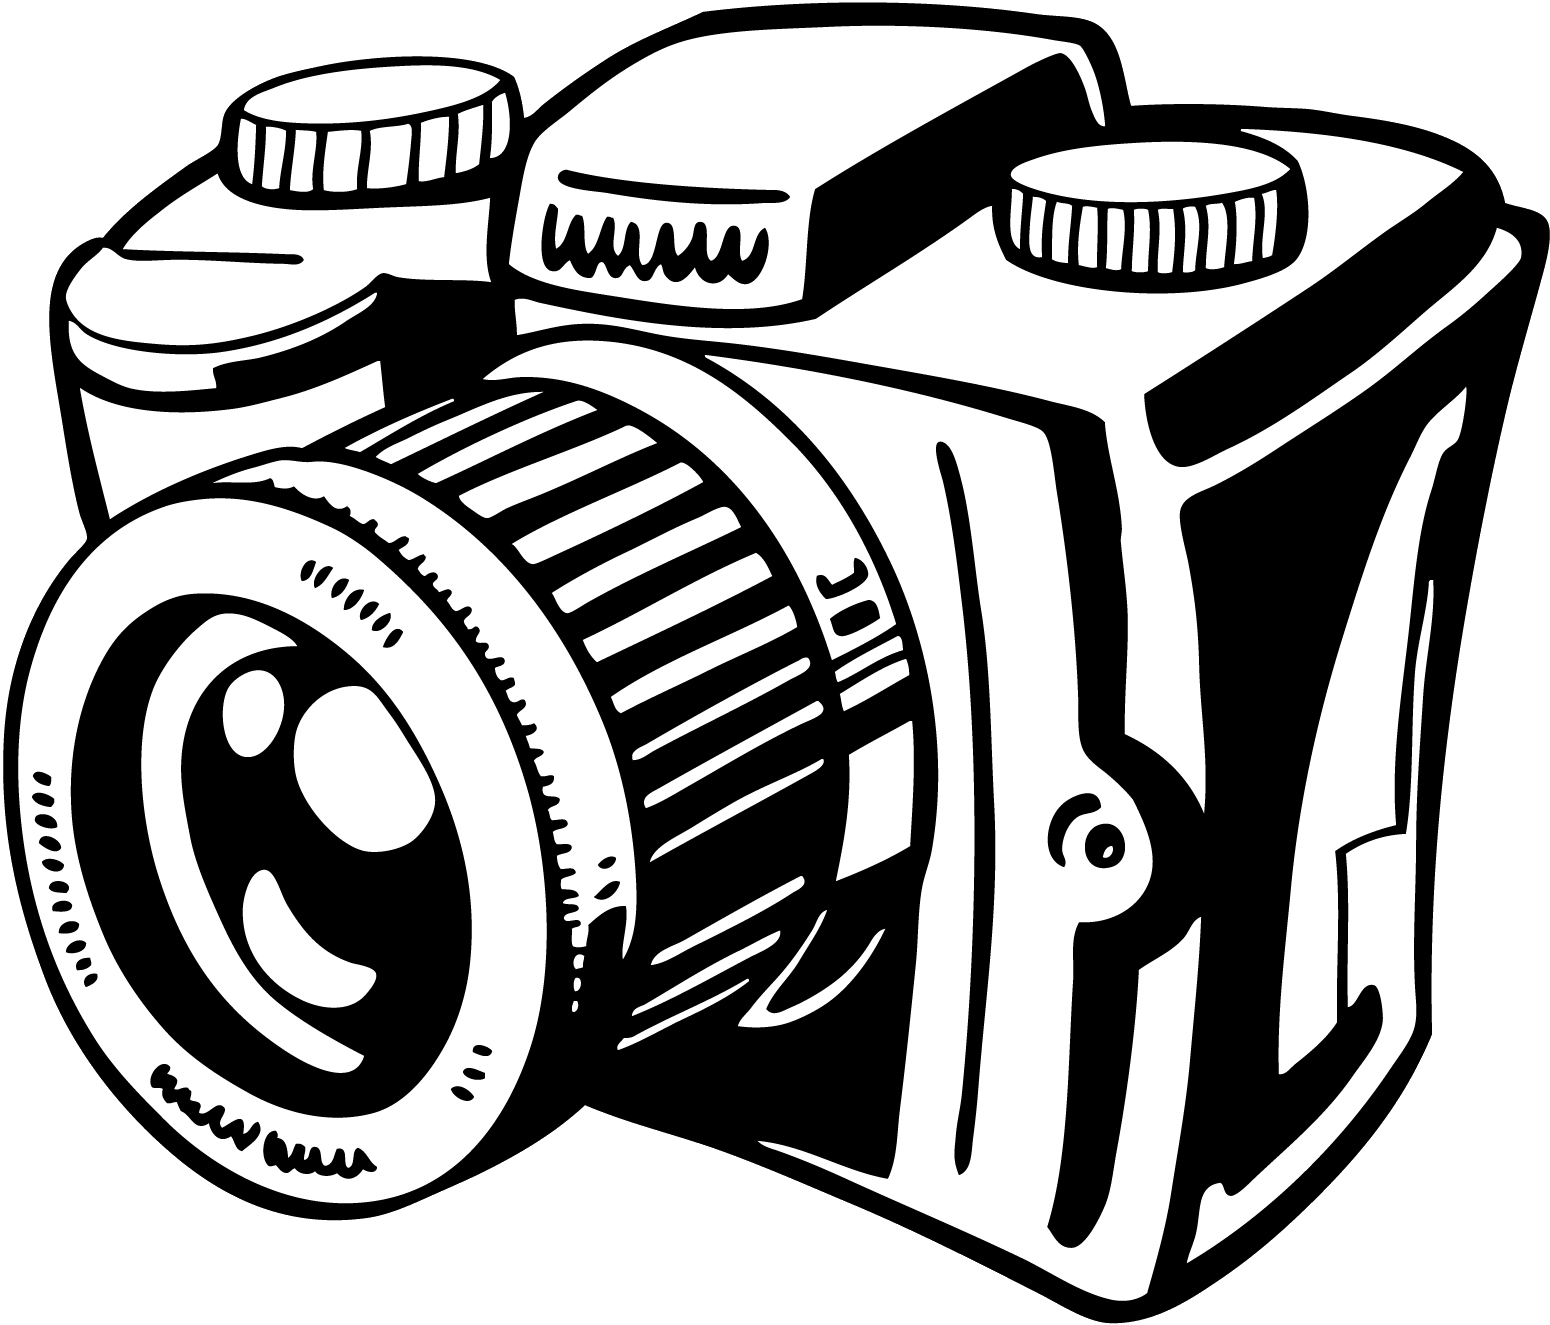 Camera Clipart images collection for free download.